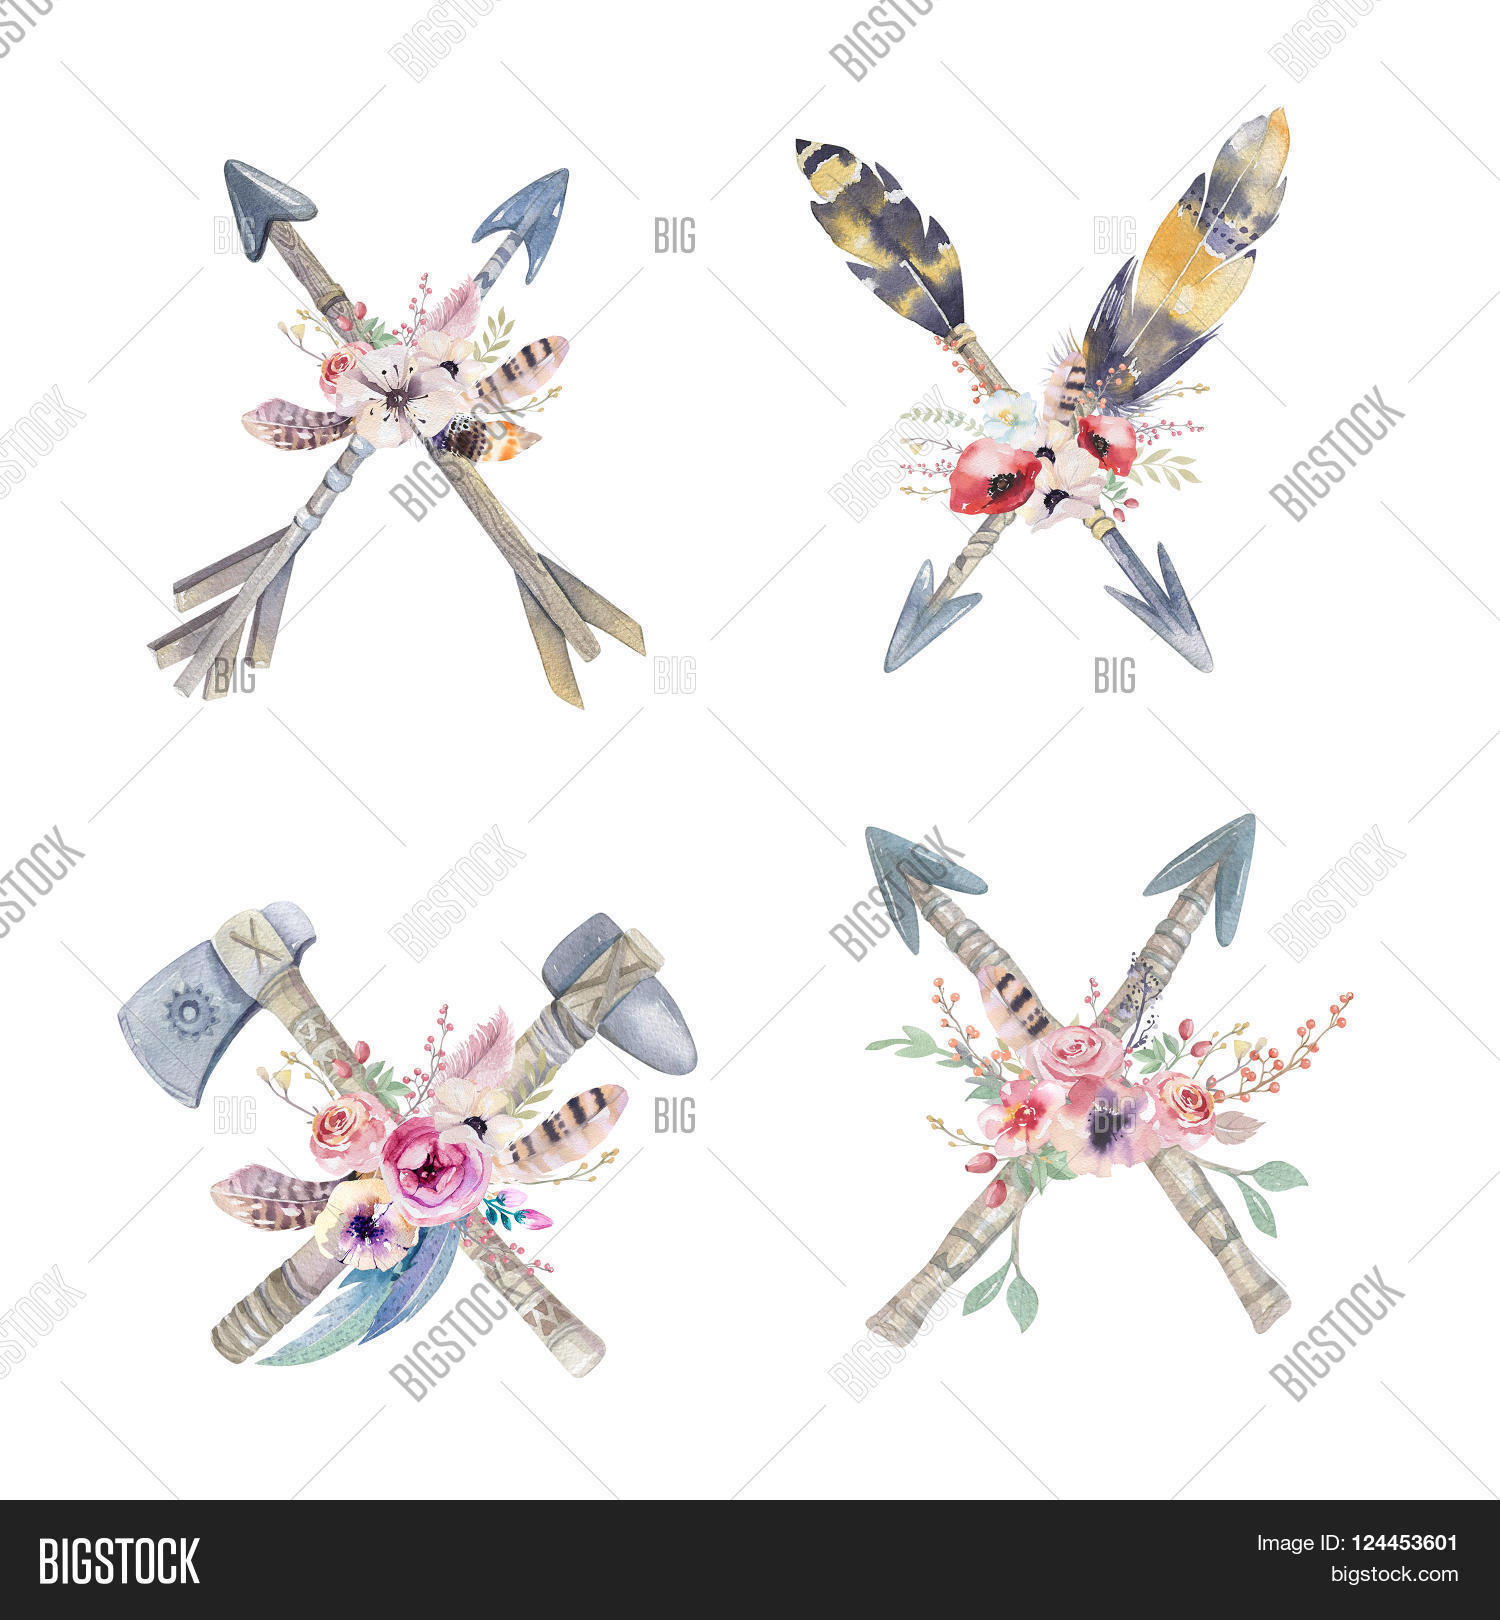 Watercolor colorful ethnic set of arrows and flowers in native American style.Tribal Navajo isolated